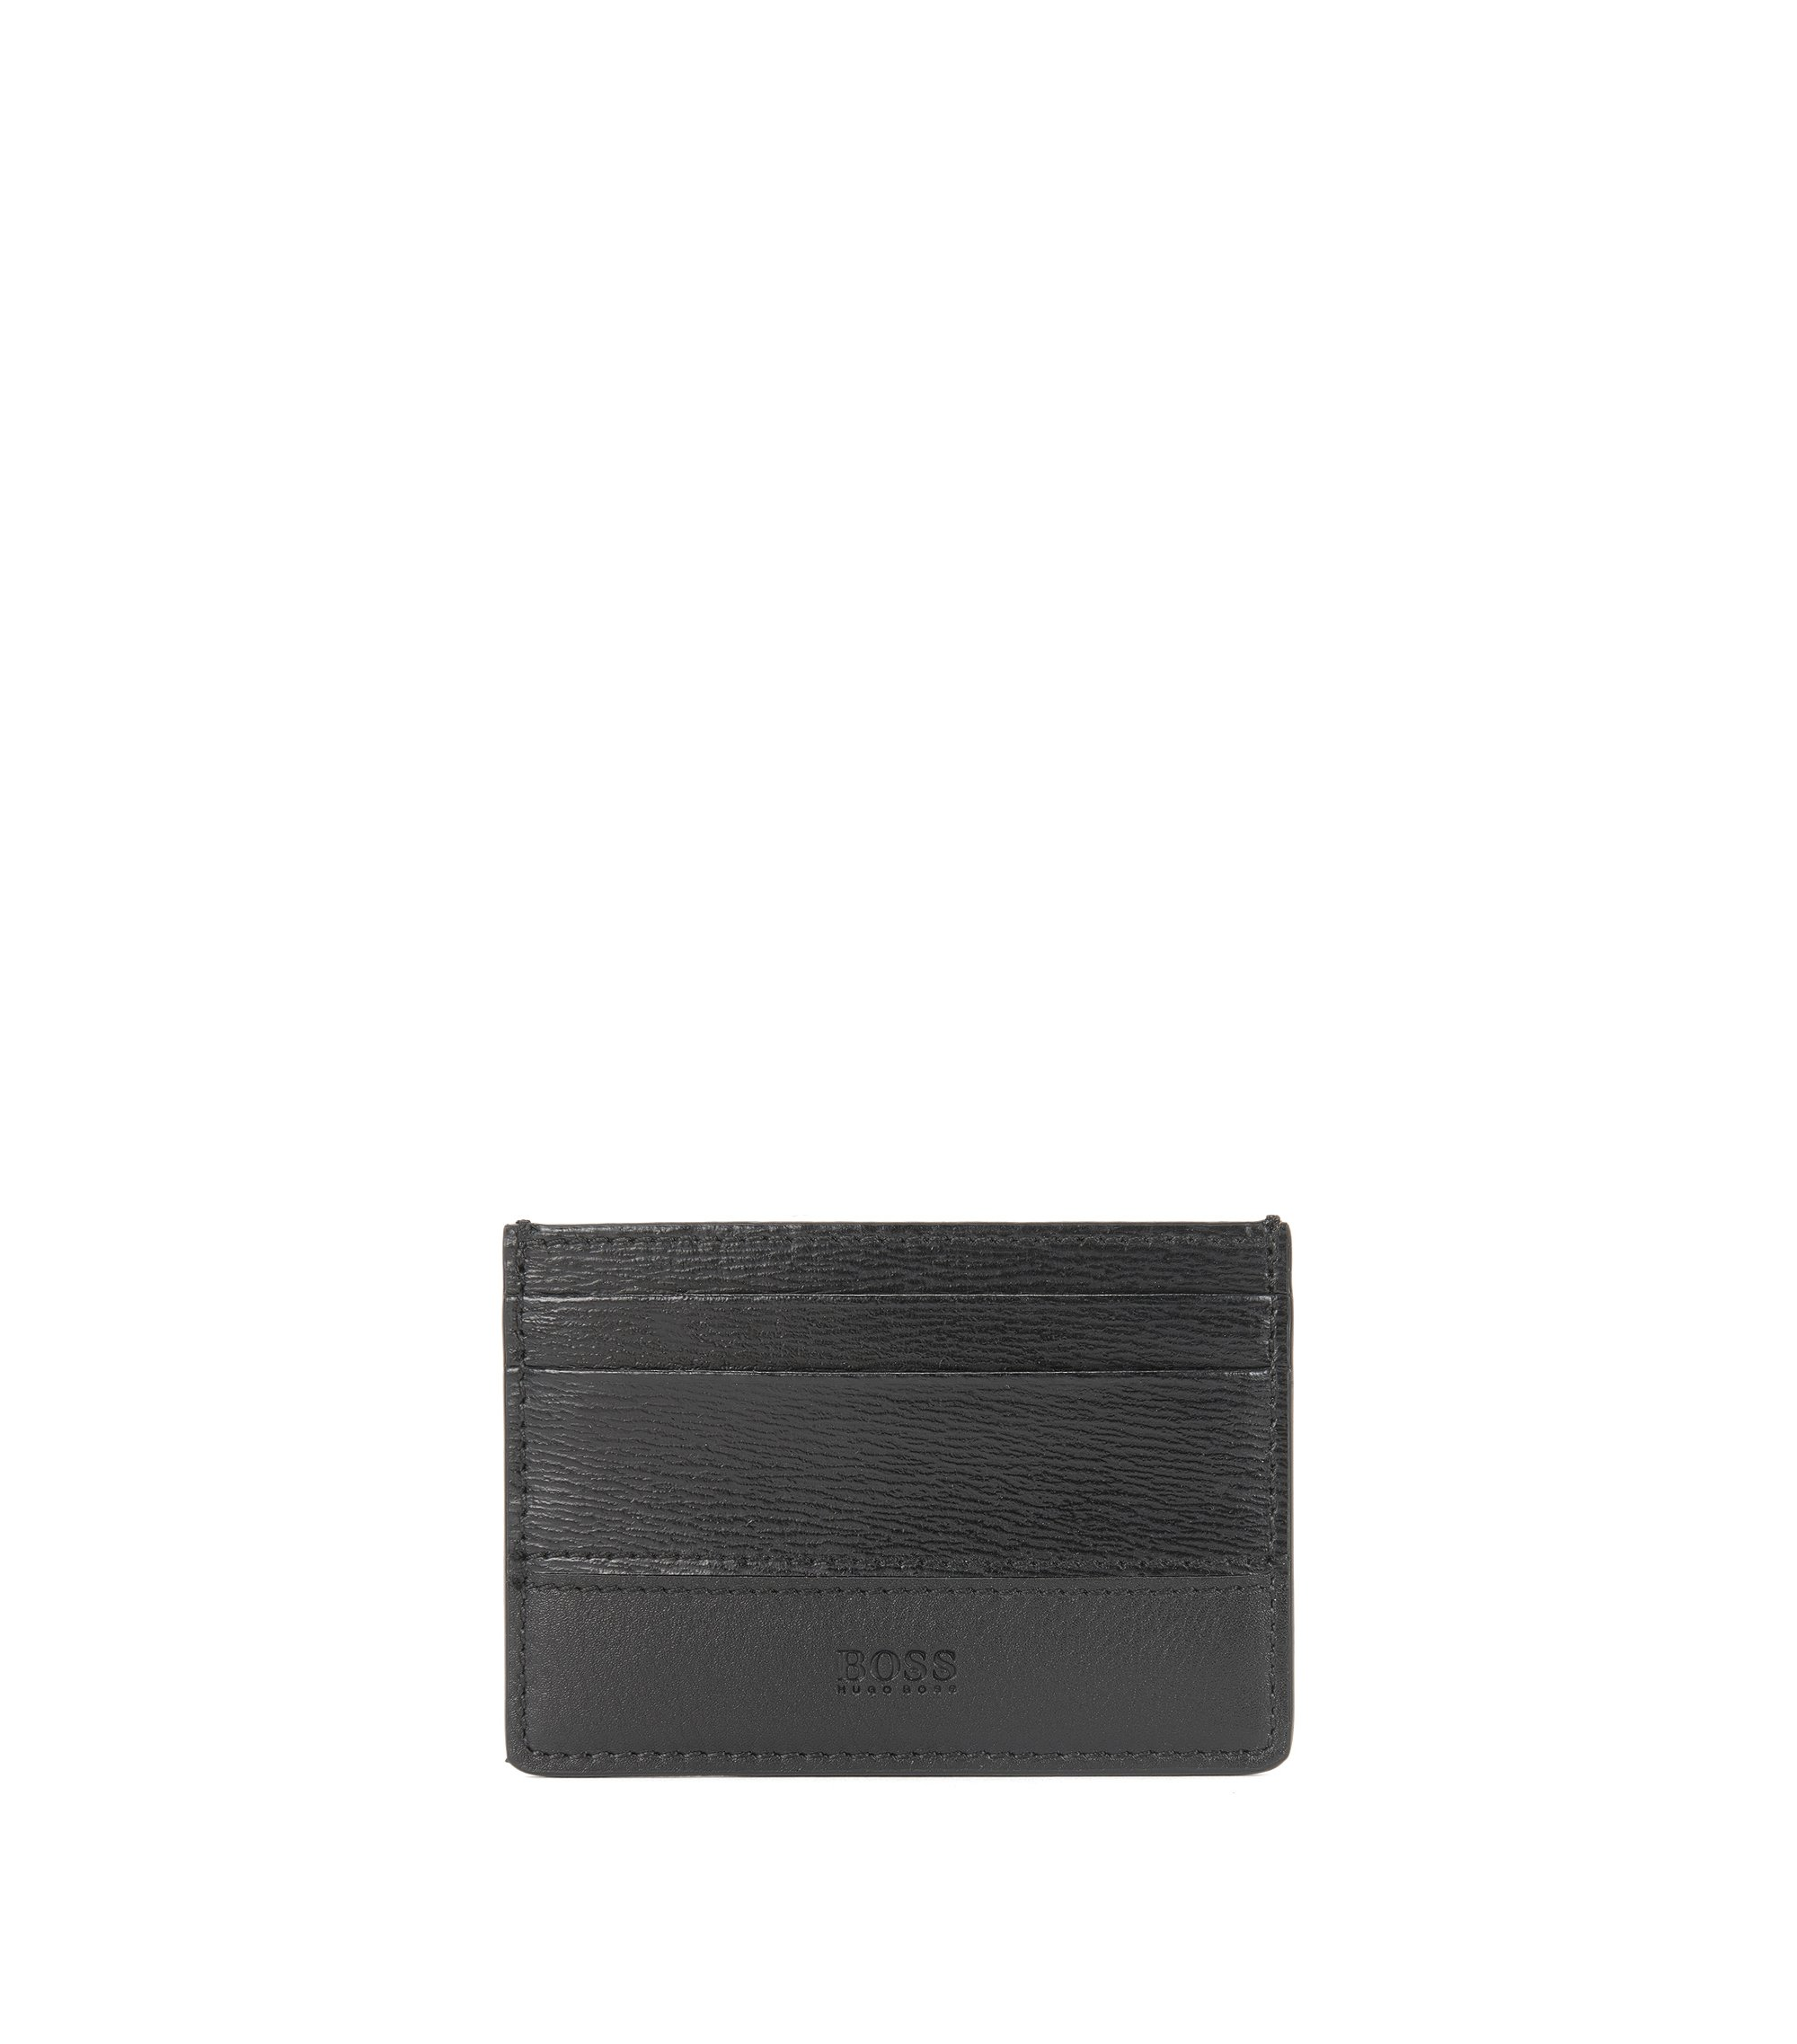 Leather Card Holder | Foxus S Card, Black